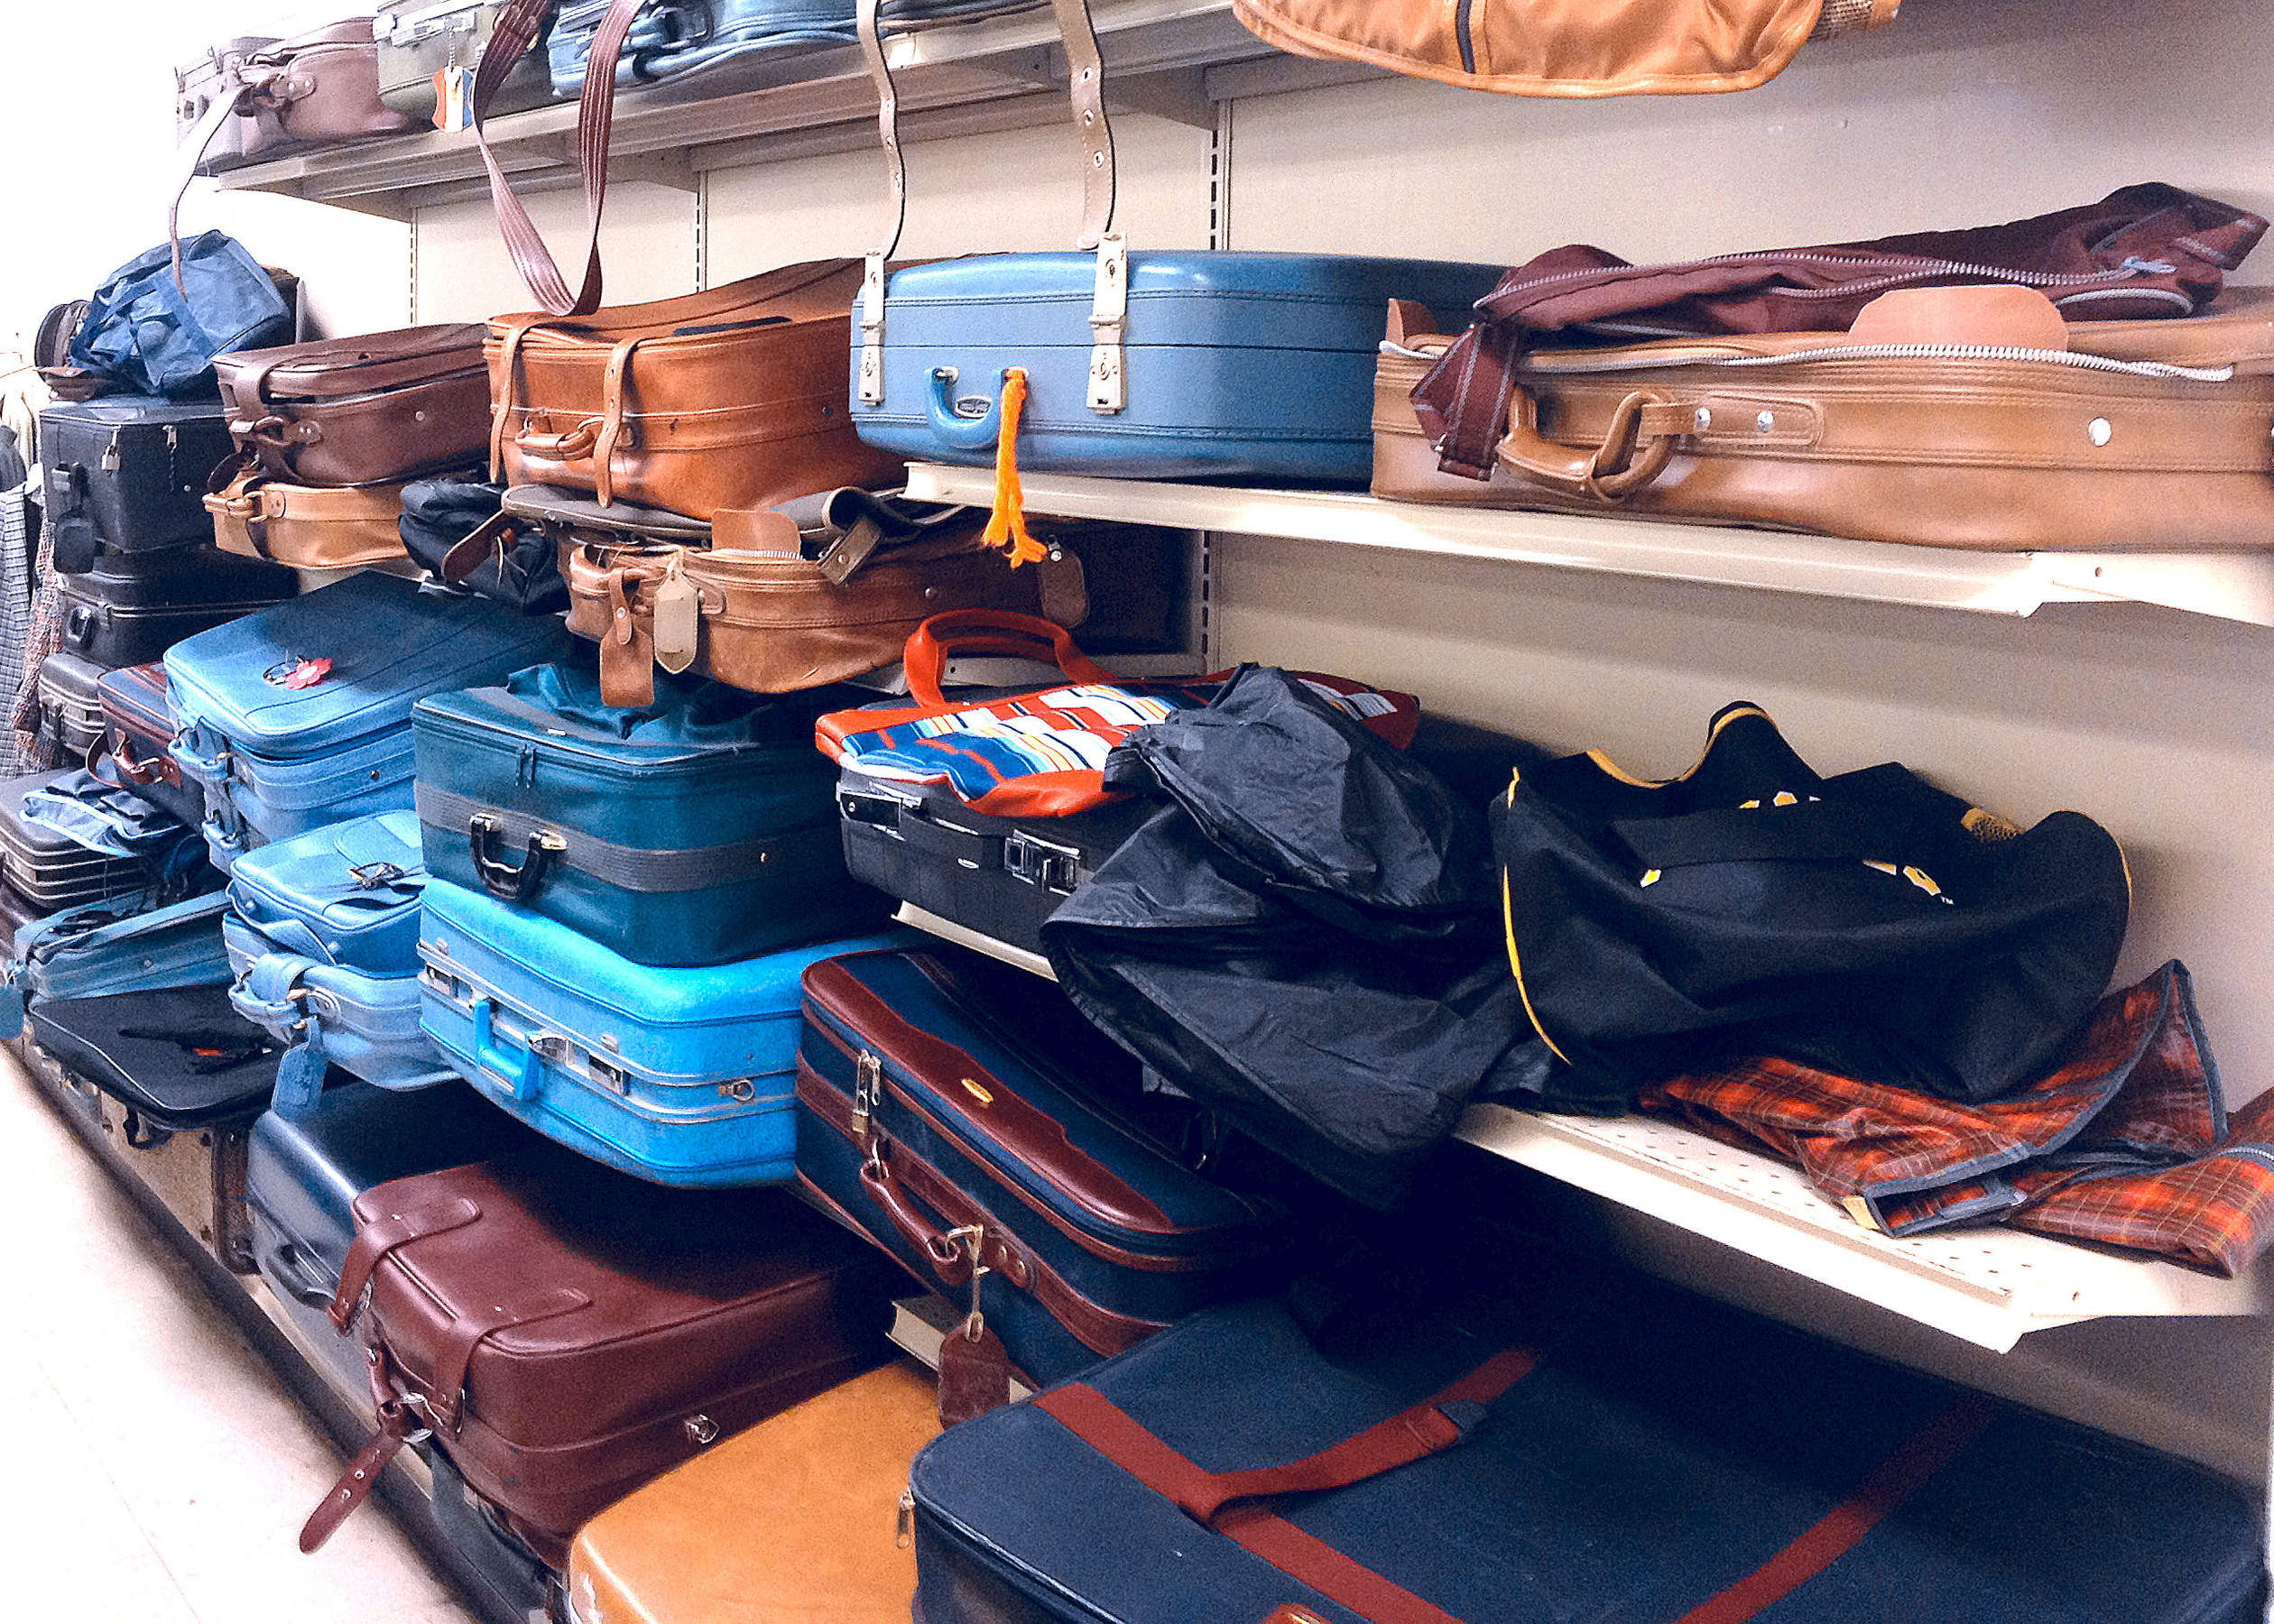 Luggage and bags at Goodwill store